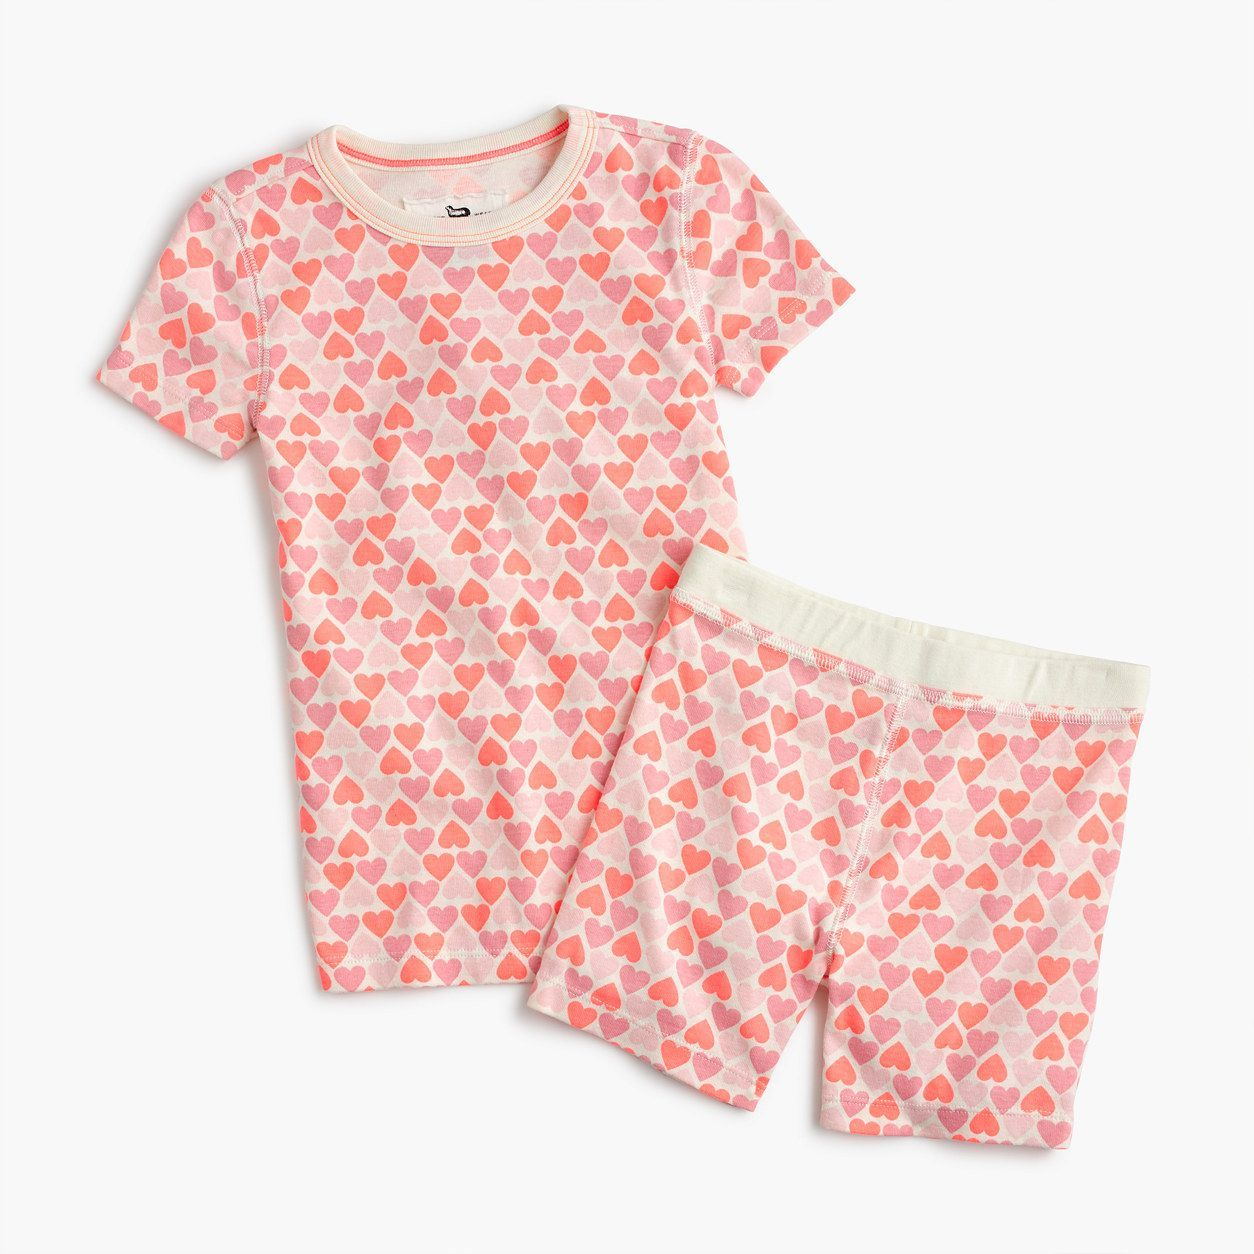 cef3f8f1e26e crewcuts Girls Short-Sleeve Pajama Set In Hearts (Size 8 Kid ...